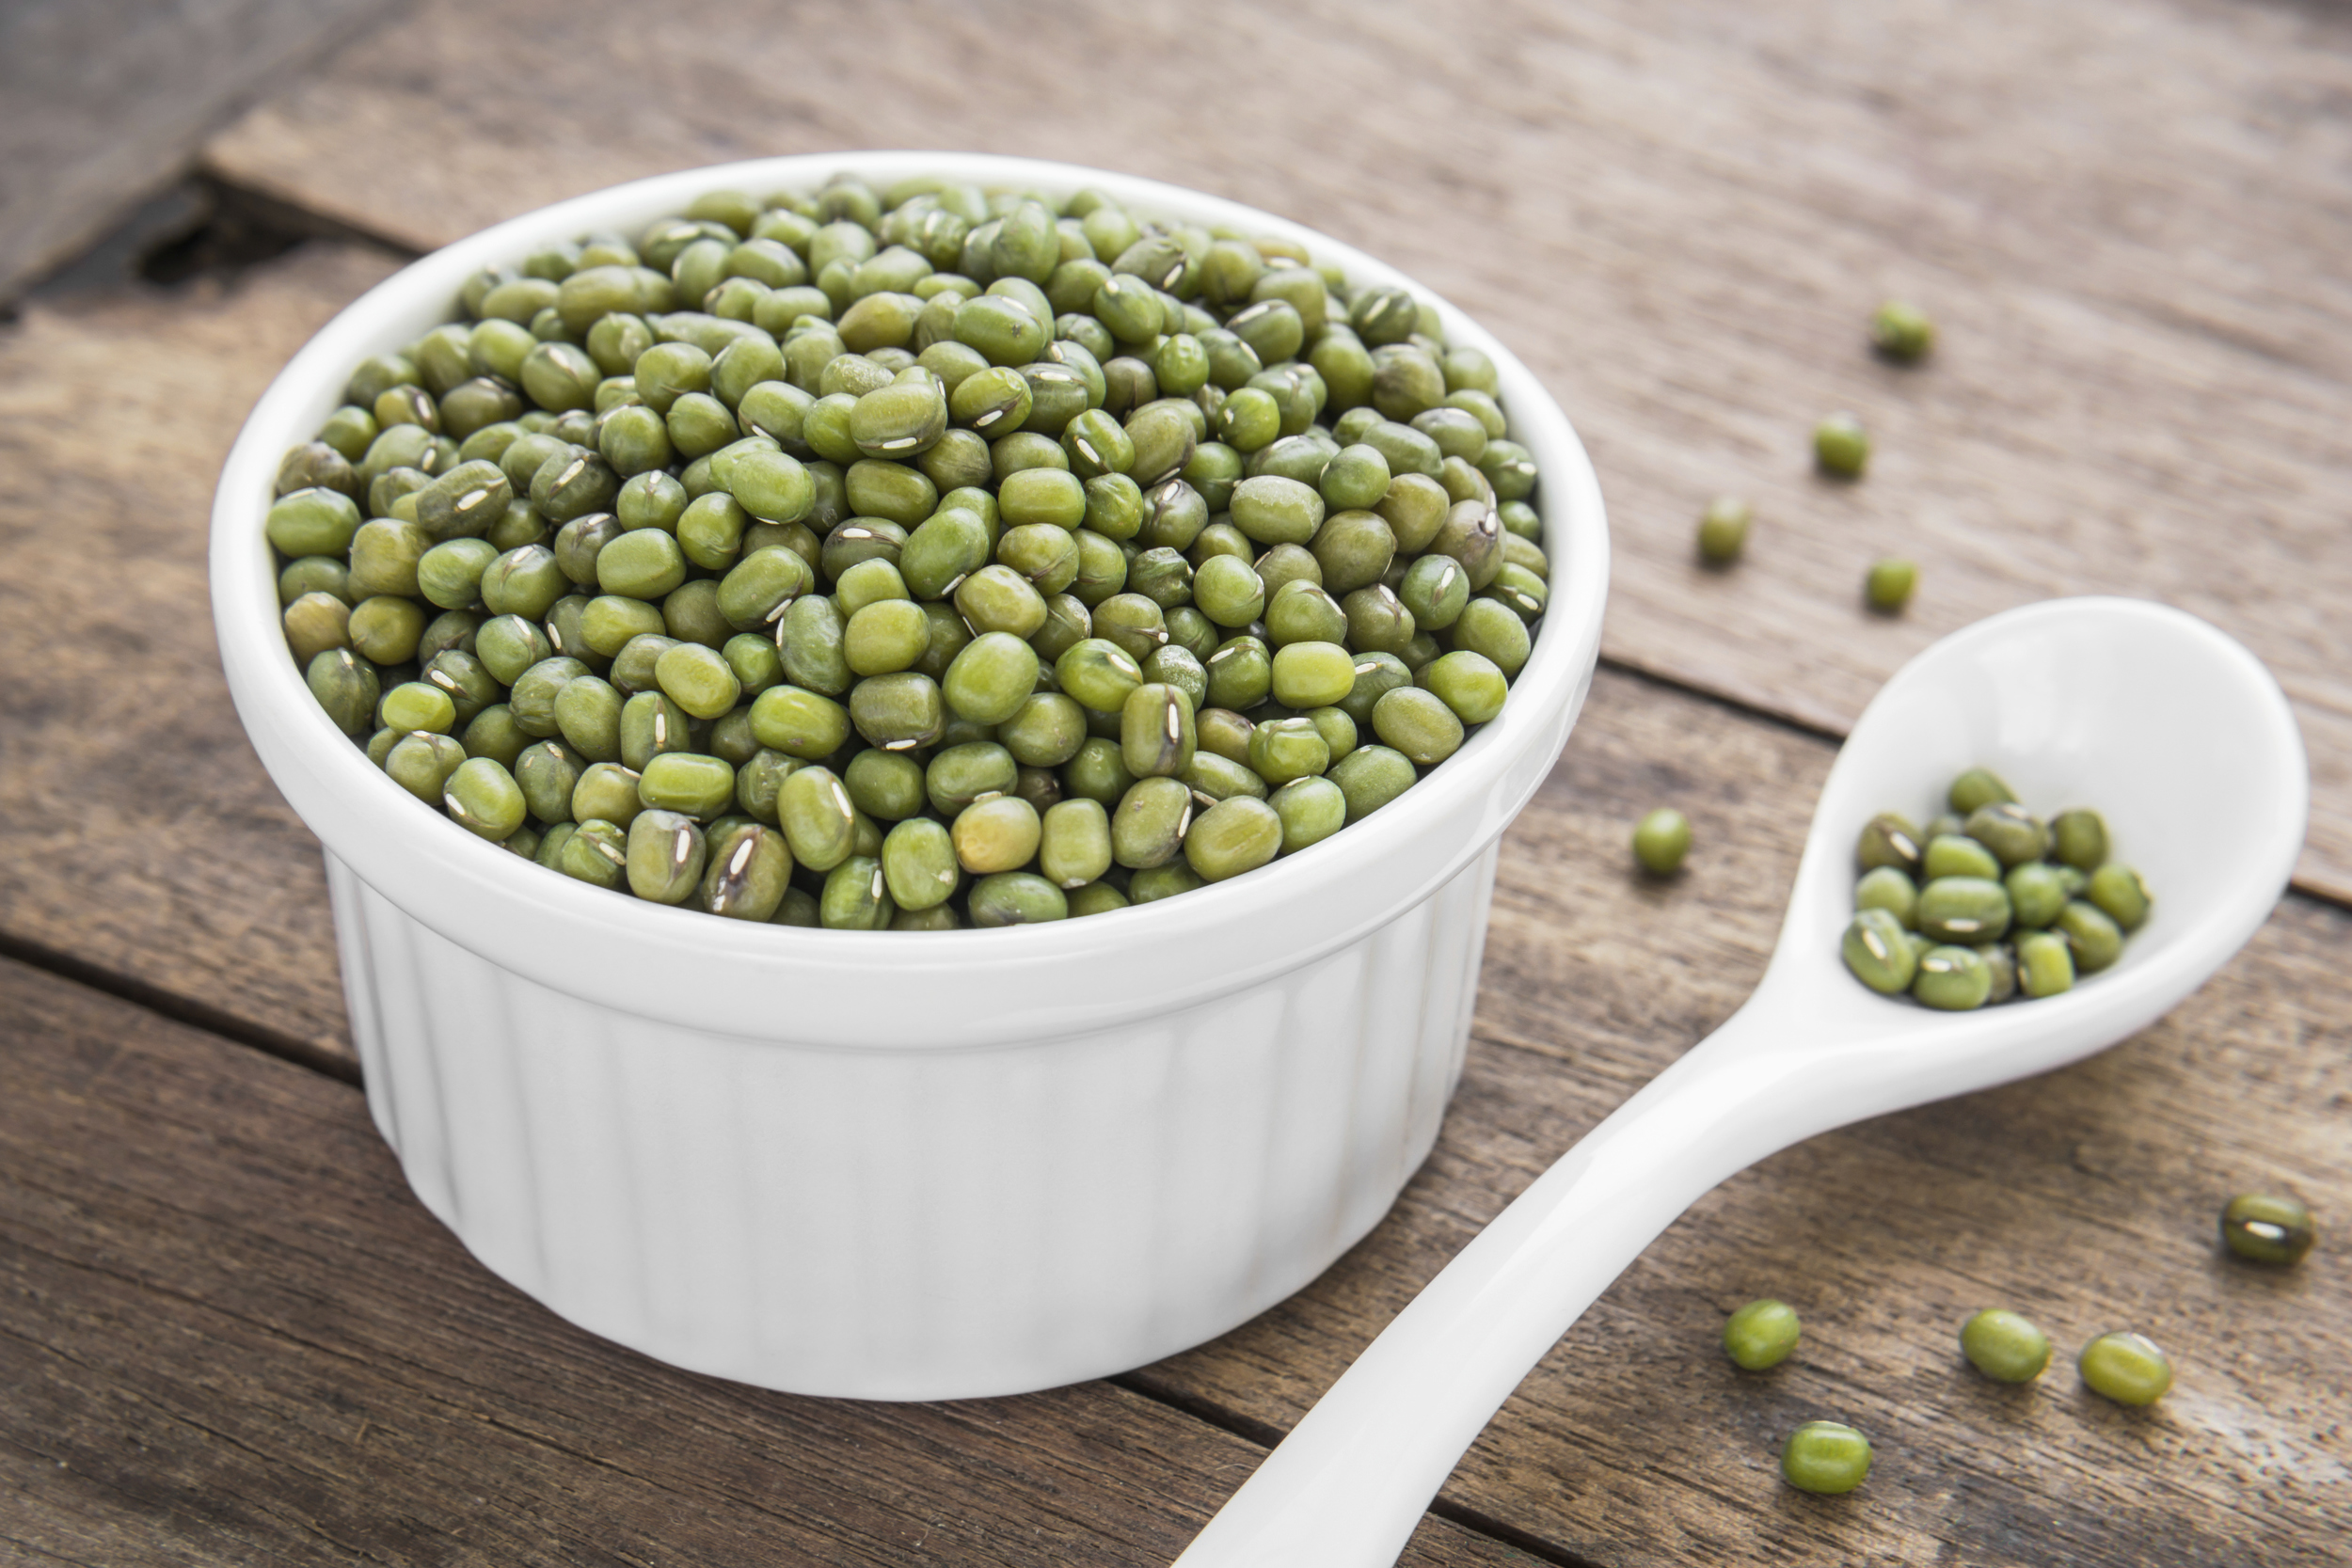 Photo of mung beans by Amarita/iStock / Getty Images